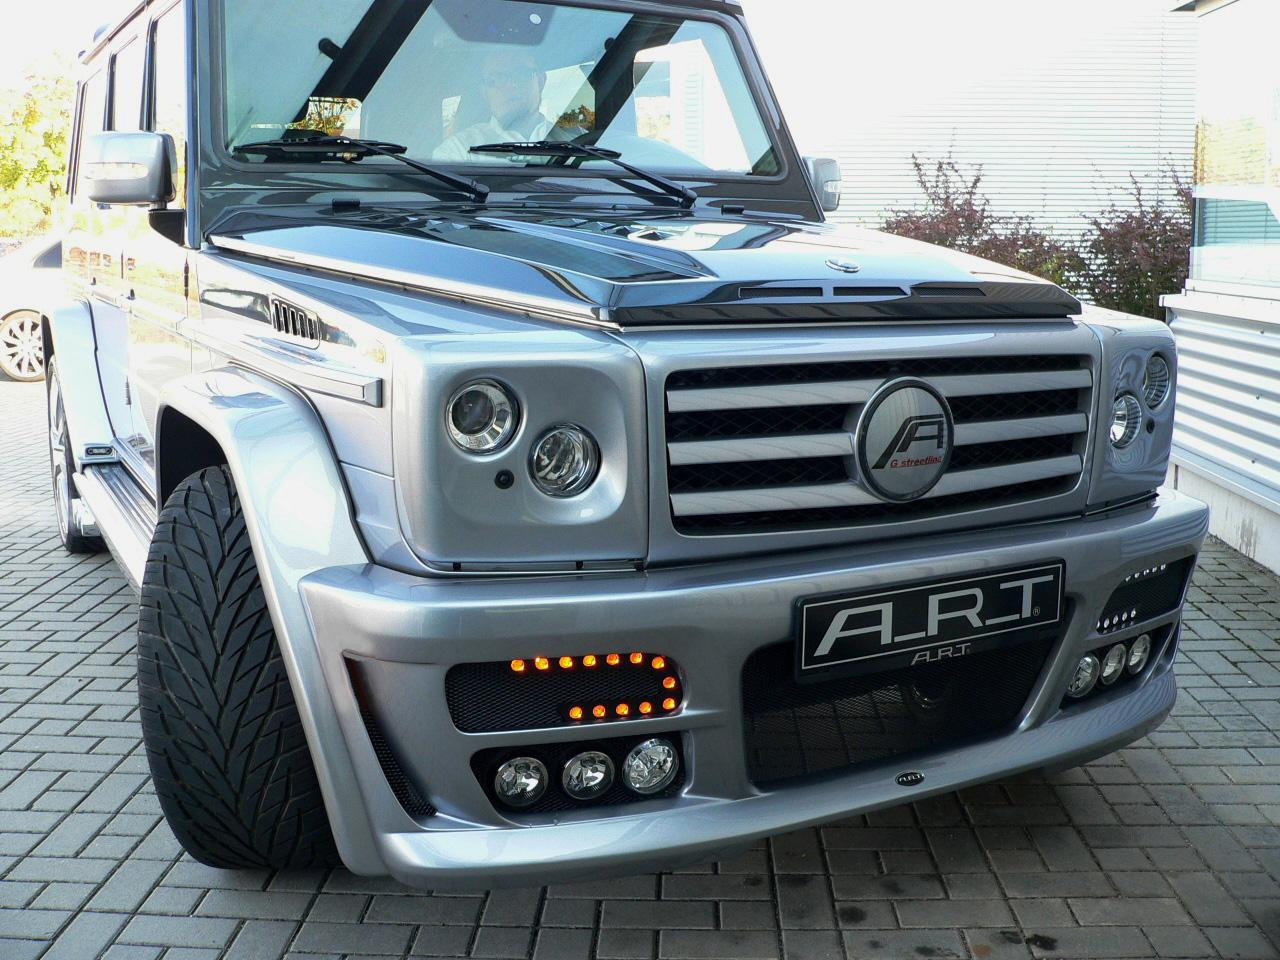 Mercedes G Klasse Becomes Art G Streetline Sterling on Sterling V8 Engine